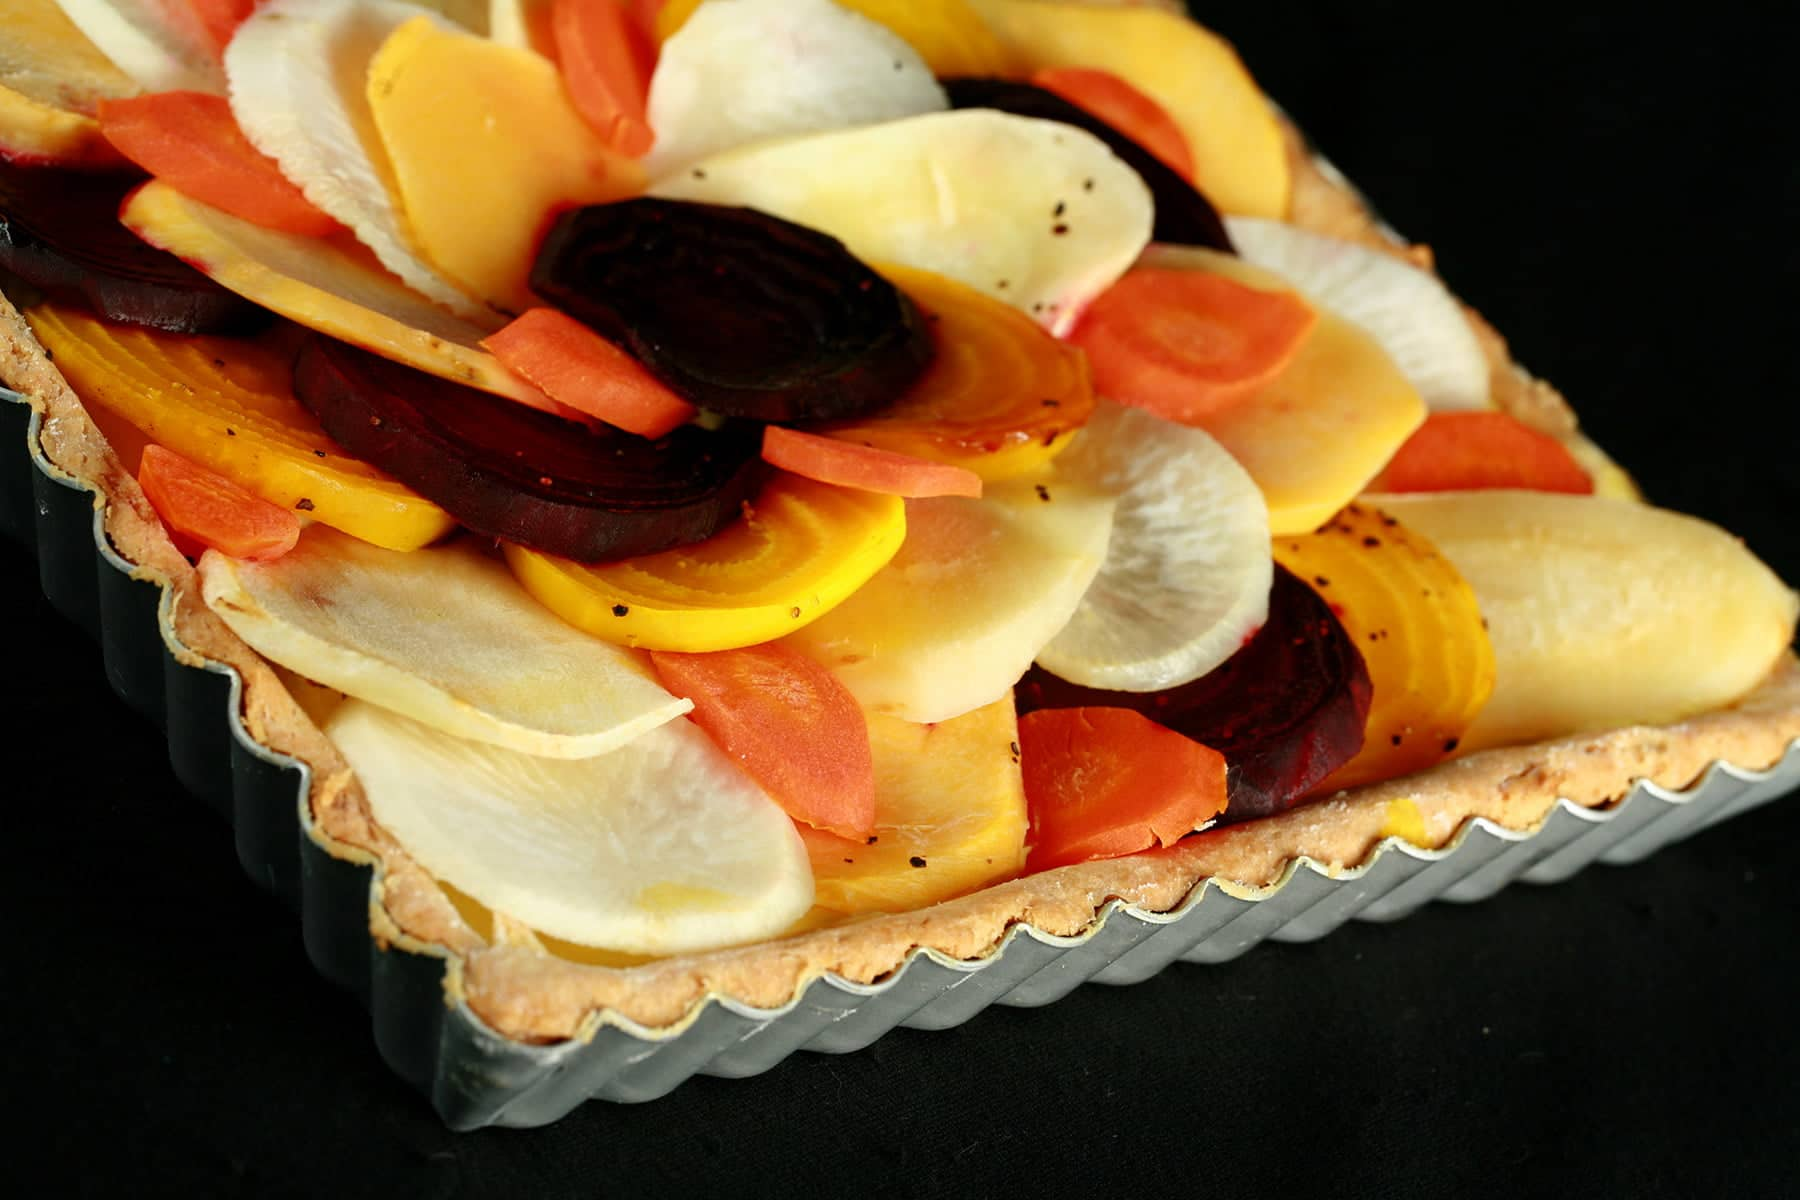 A close up view of a square root tart - a tart cooked in a square pan, with slices of a variety of root veggies arranged on top.